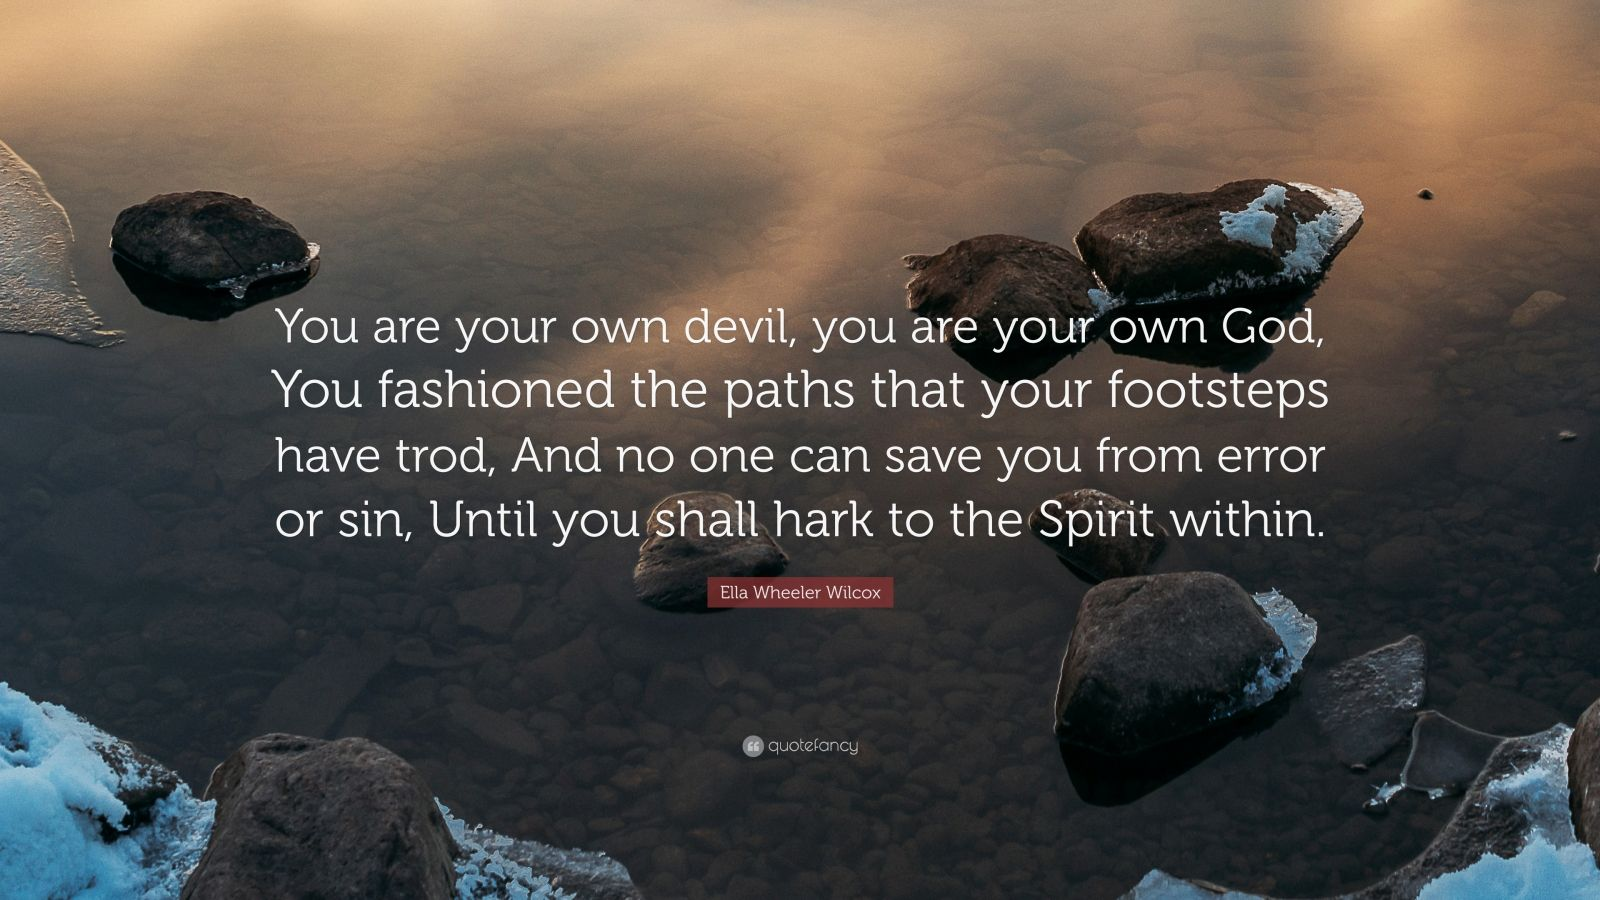 """Ella Wheeler Wilcox Quote: """"You are your own devil, you are your own God, You fashioned the paths that your footsteps have trod, And no one can save you from error or sin, Until you shall hark to the Spirit within."""""""